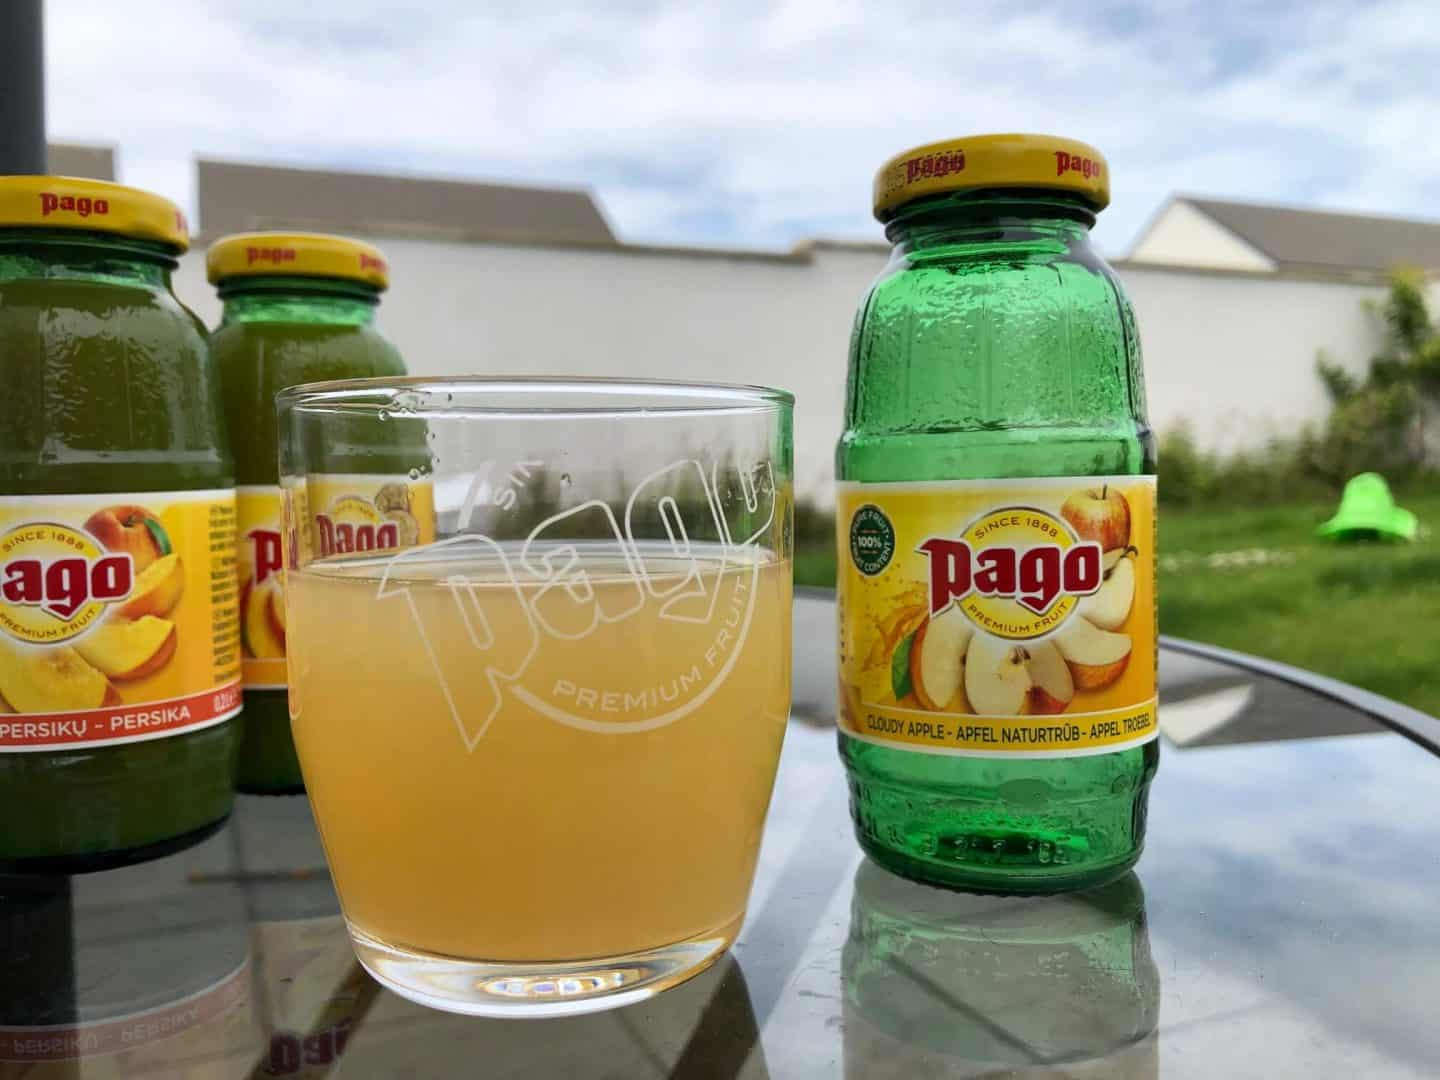 Pago Premium Fruit Juice - cloudy apple juice outside in the garden